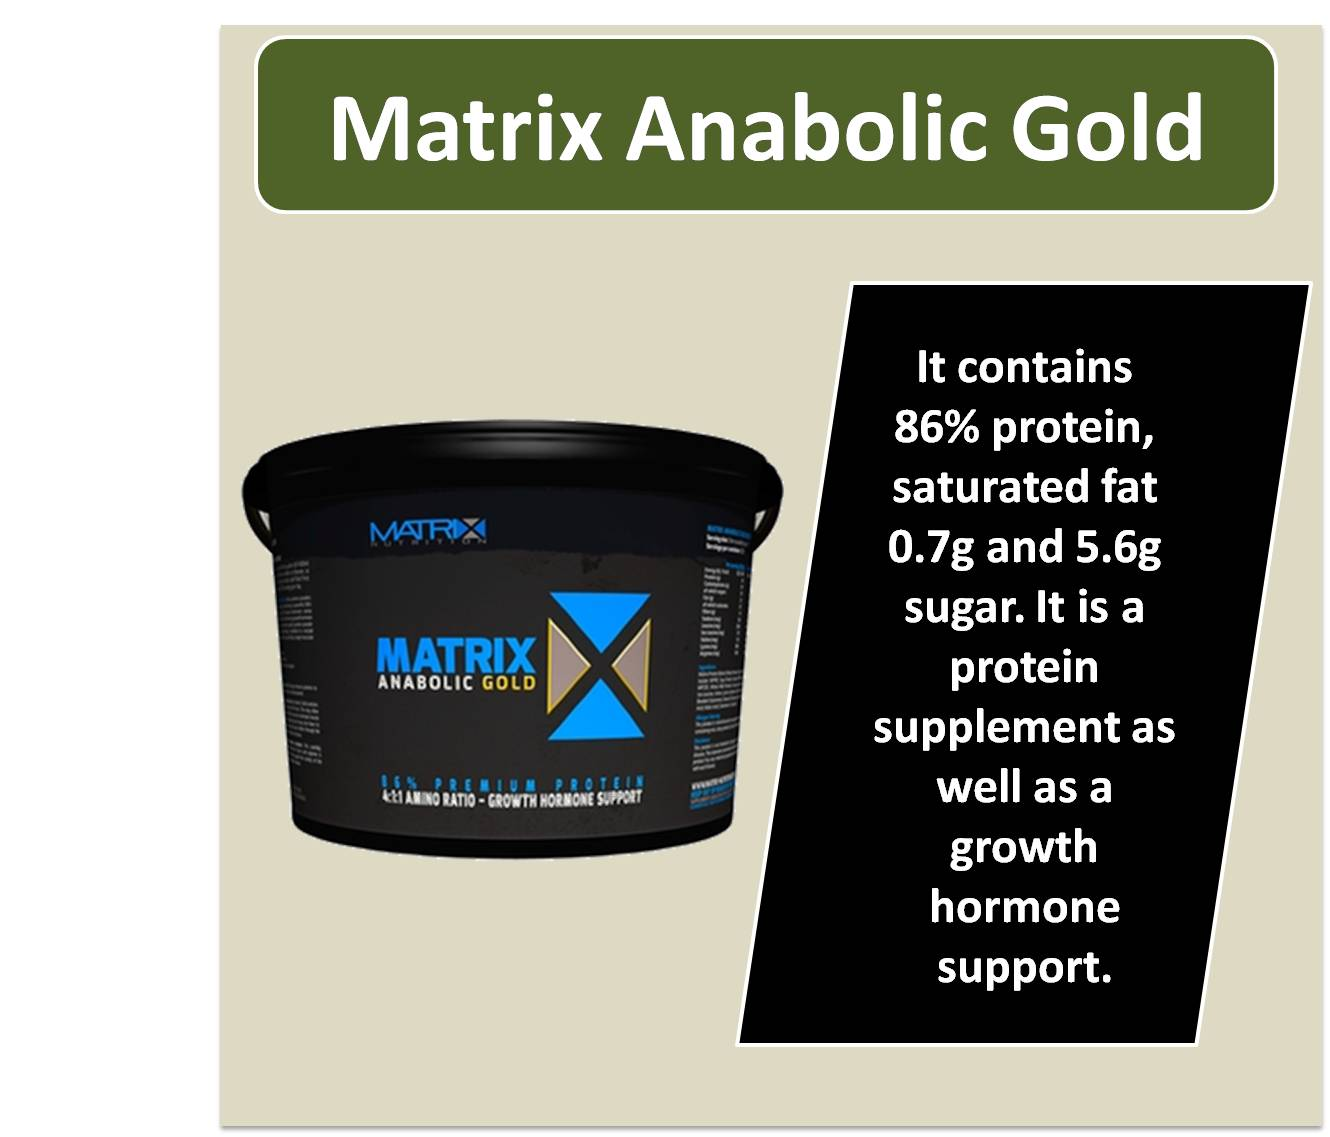 Matrix Anabolic Gold